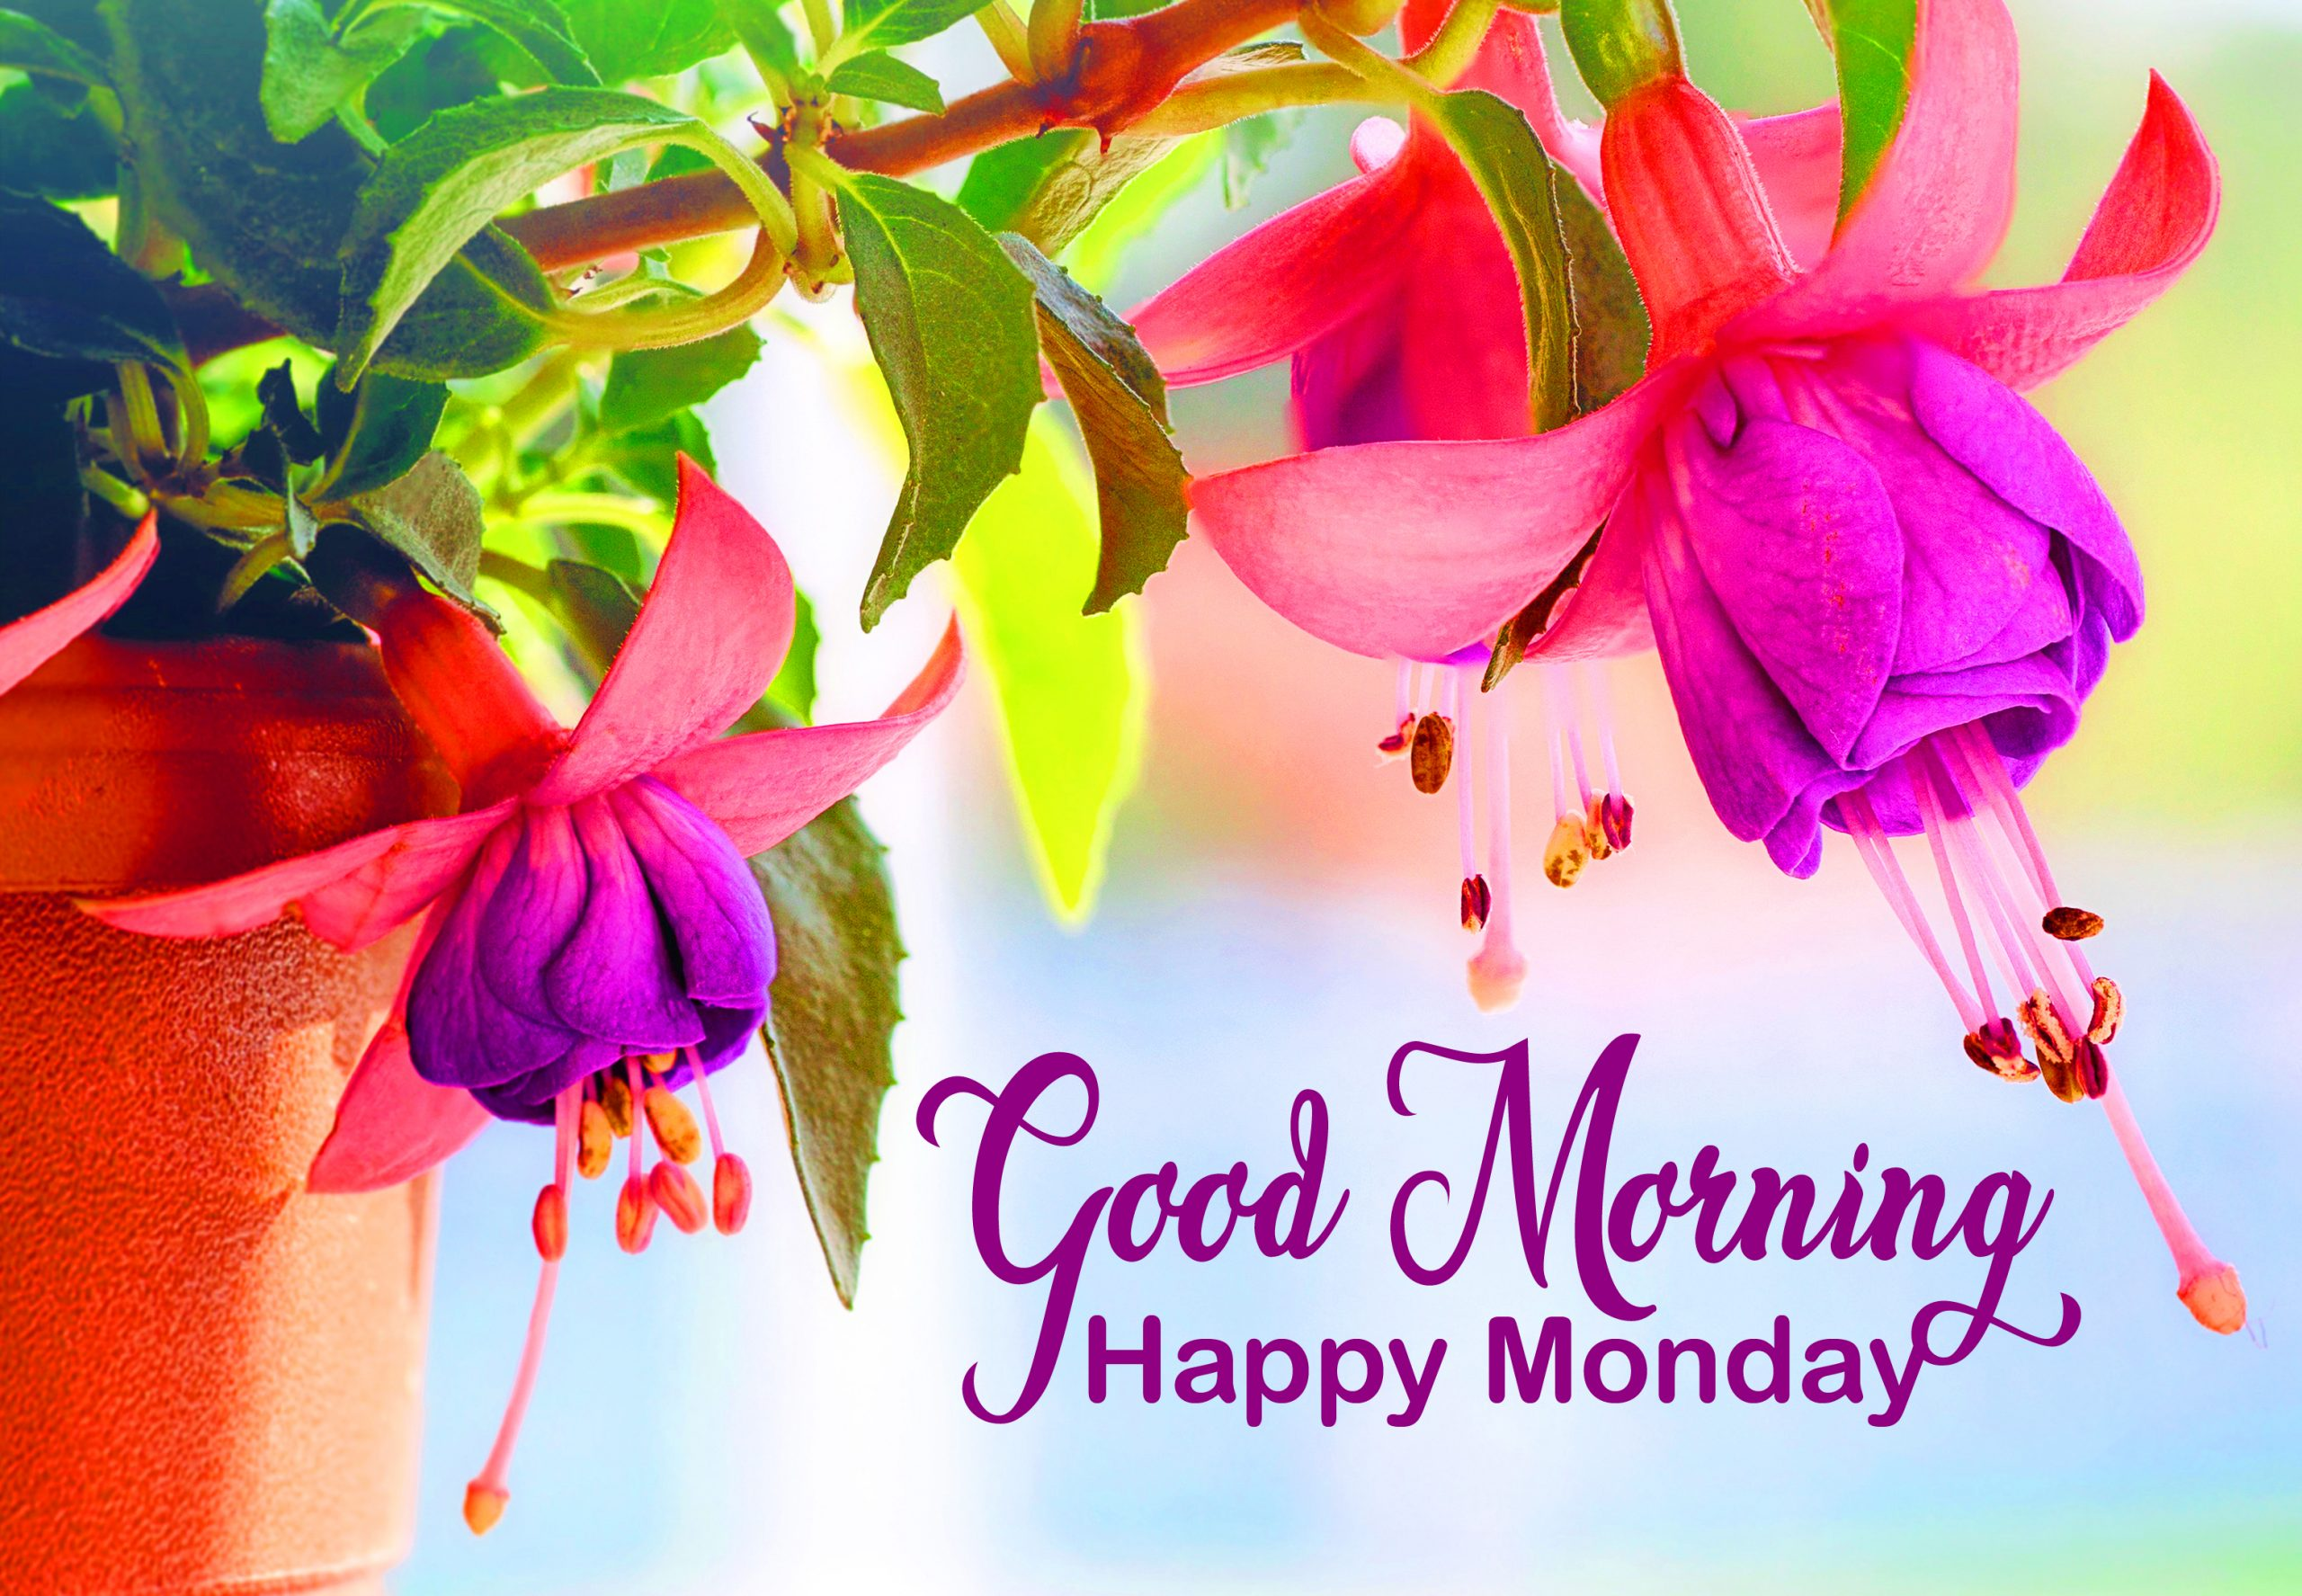 Beautiful-and-Colorful-Flowers-Good-Morning-Happy-Monday-Image-scaled